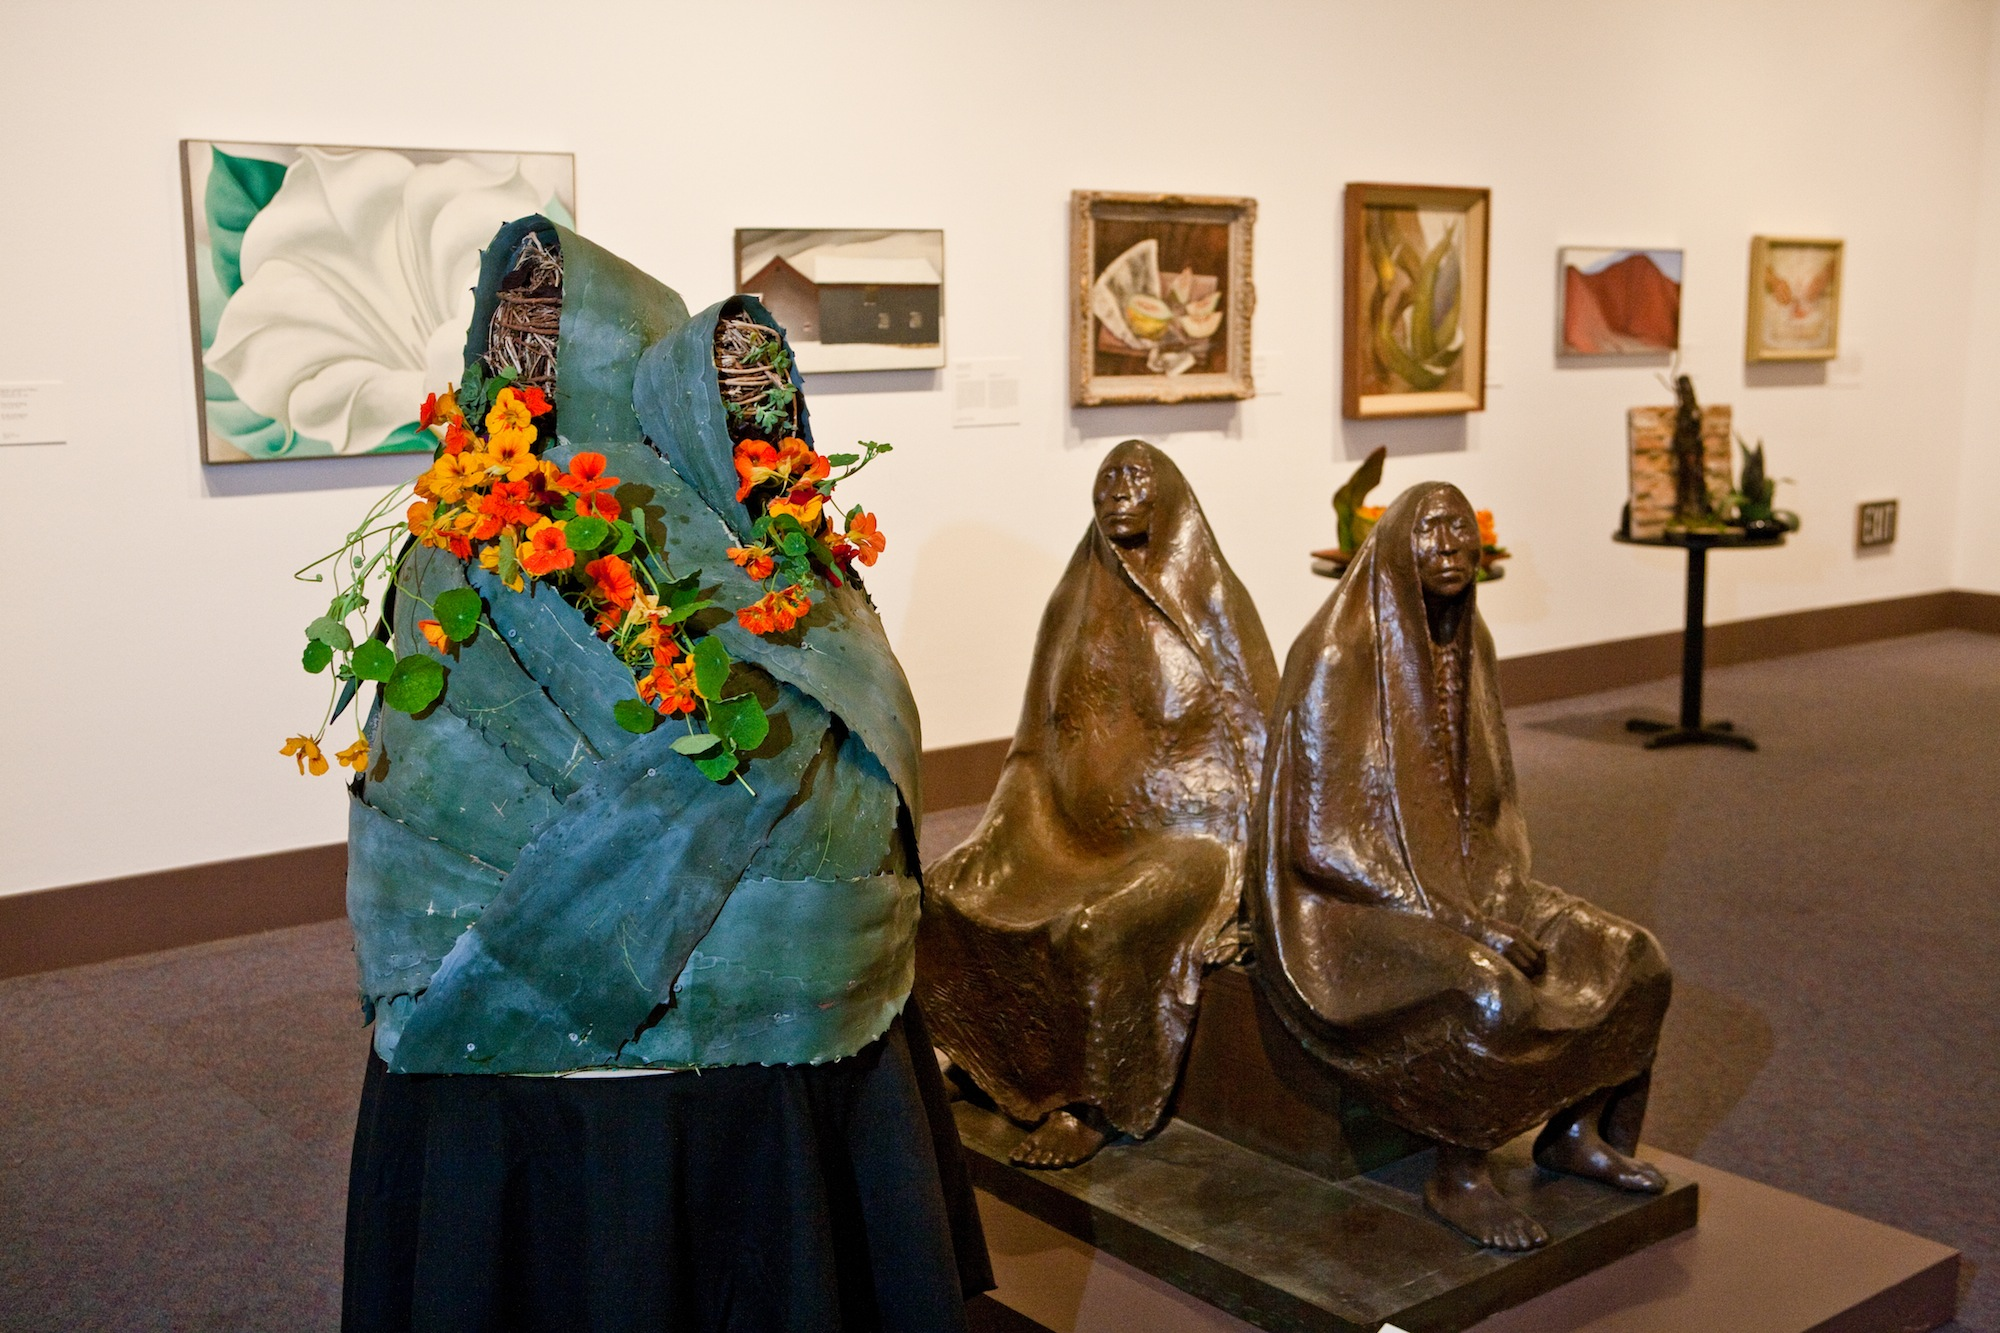 Floral interpretations of works of art from the Museum's permanent collection. Francisco Zúñiga. Mother and Daughter Seated, December 27, 1912-August 9, 1998. Bronze. 1971.27.